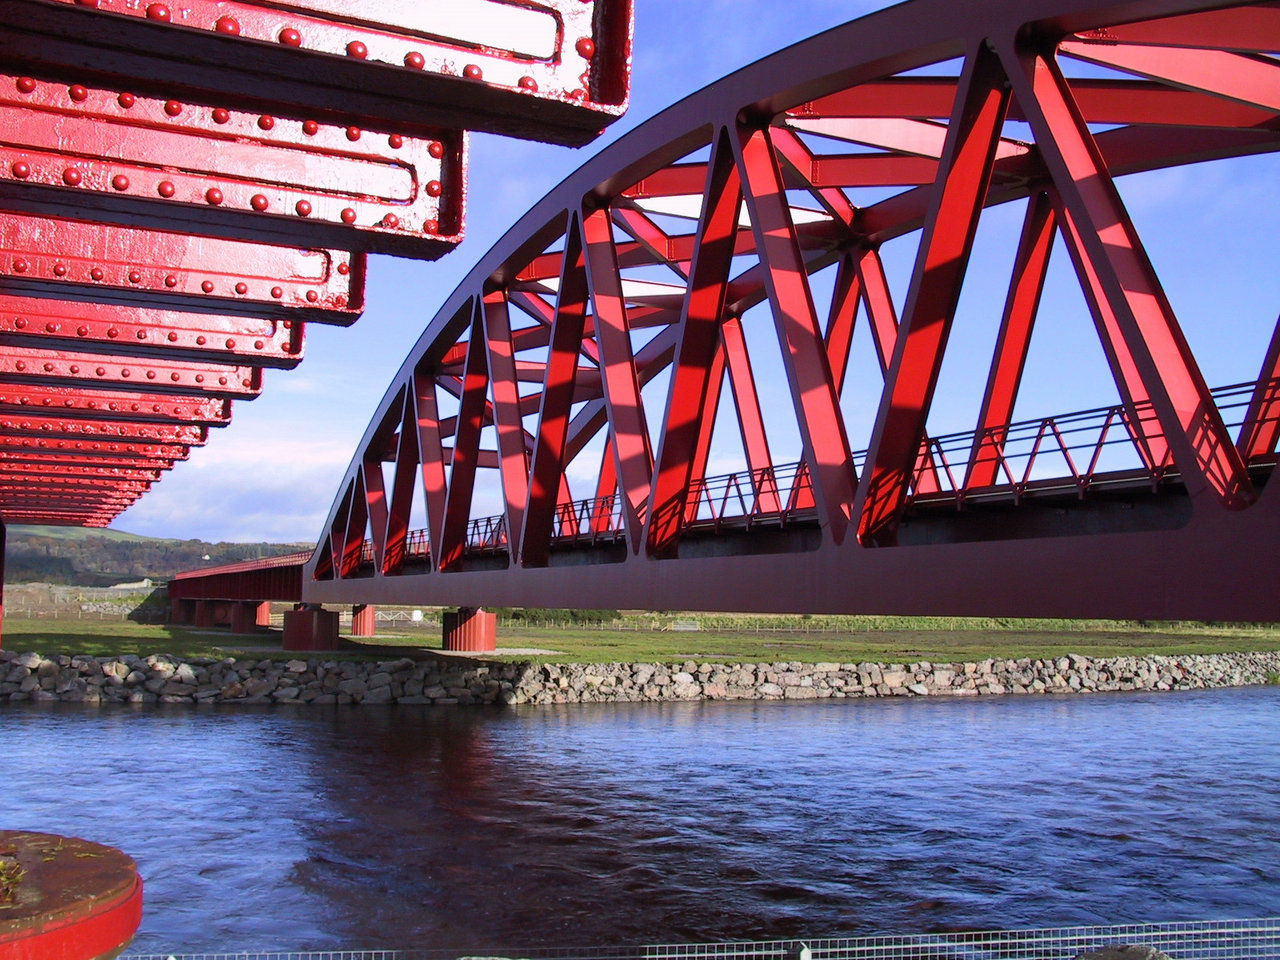 The Cantilevered Zigzag Bridge